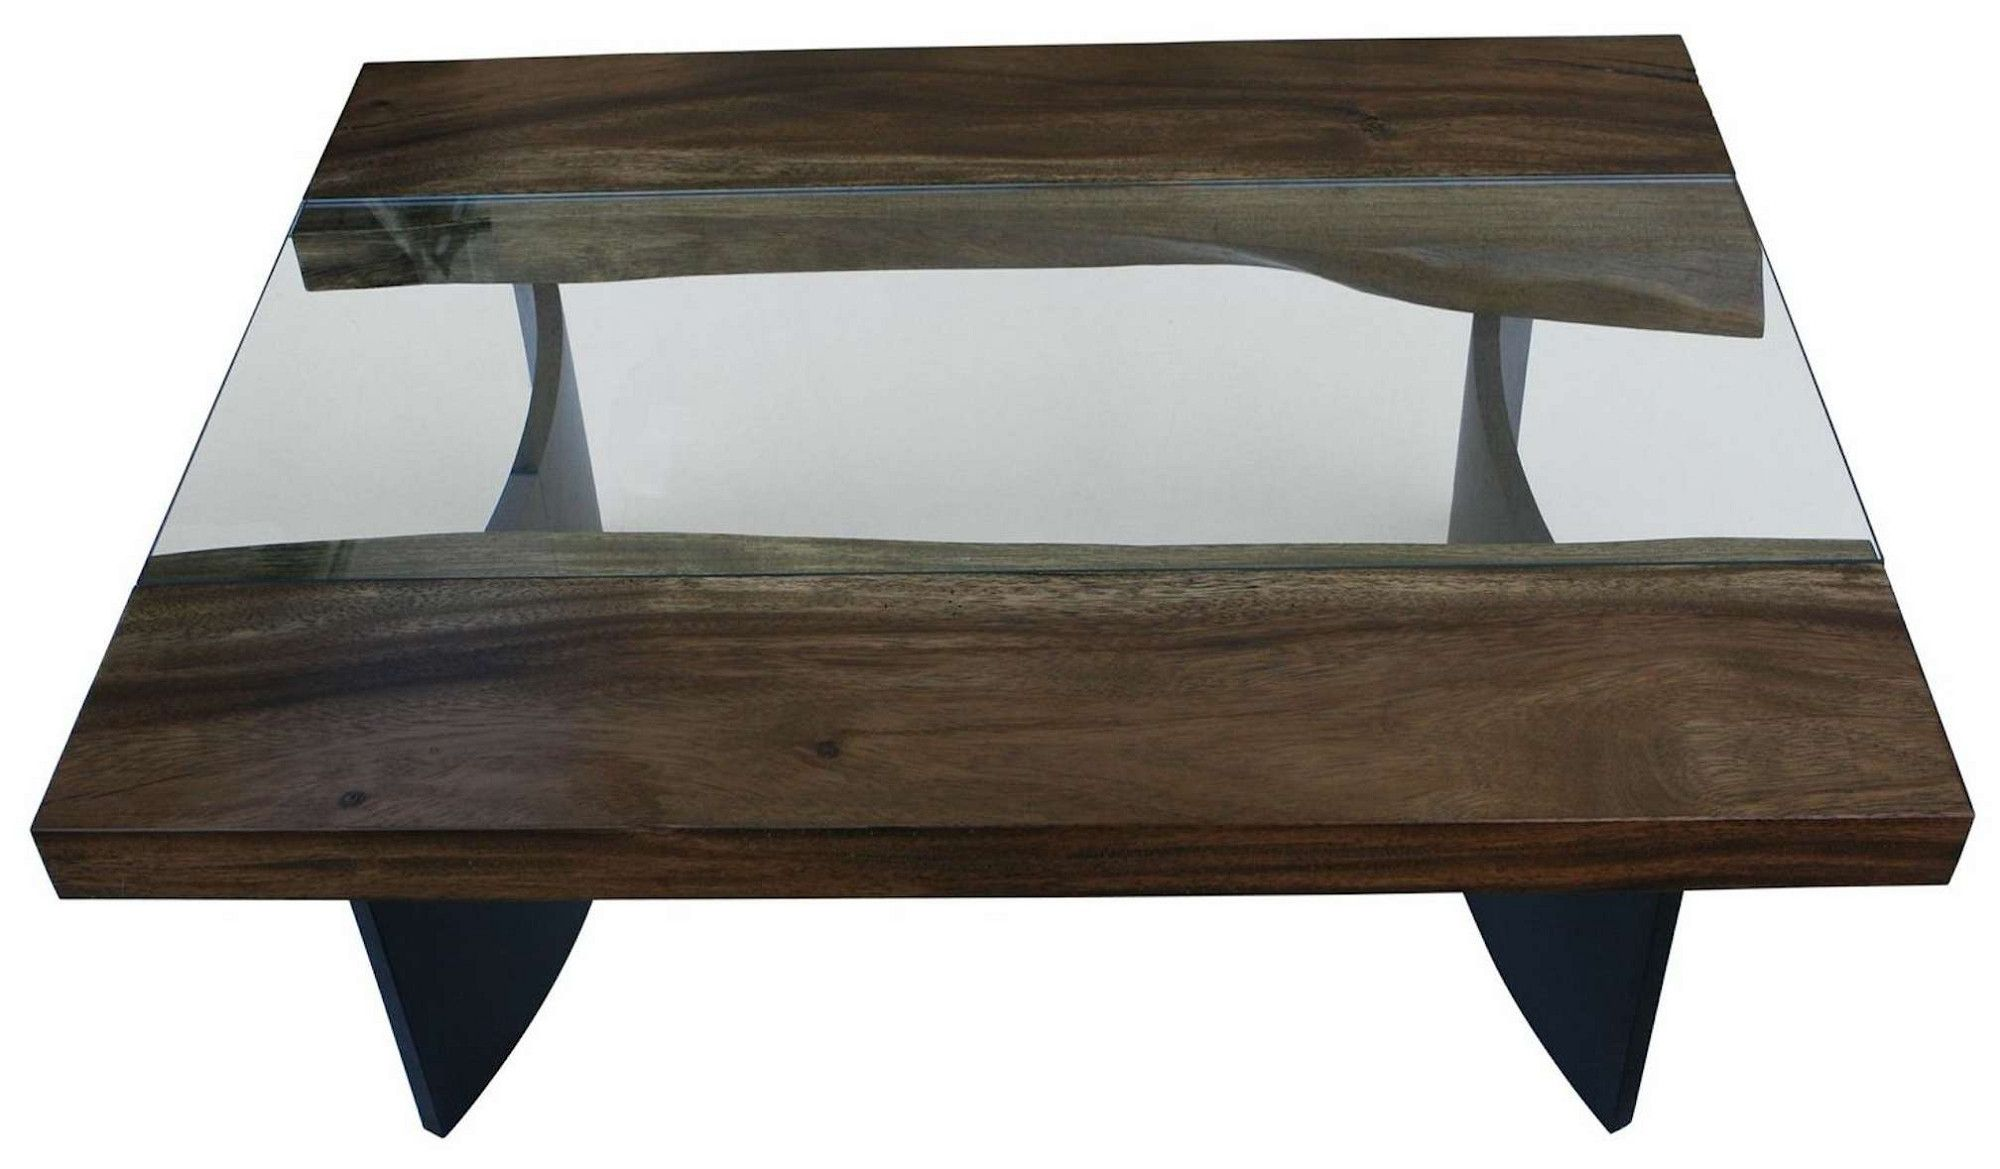 Live Edge Modern Industrial Coffee Table Modern Industrial Coffee Table Coffee Table Square Square Glass Coffee Table [ 1169 x 2000 Pixel ]